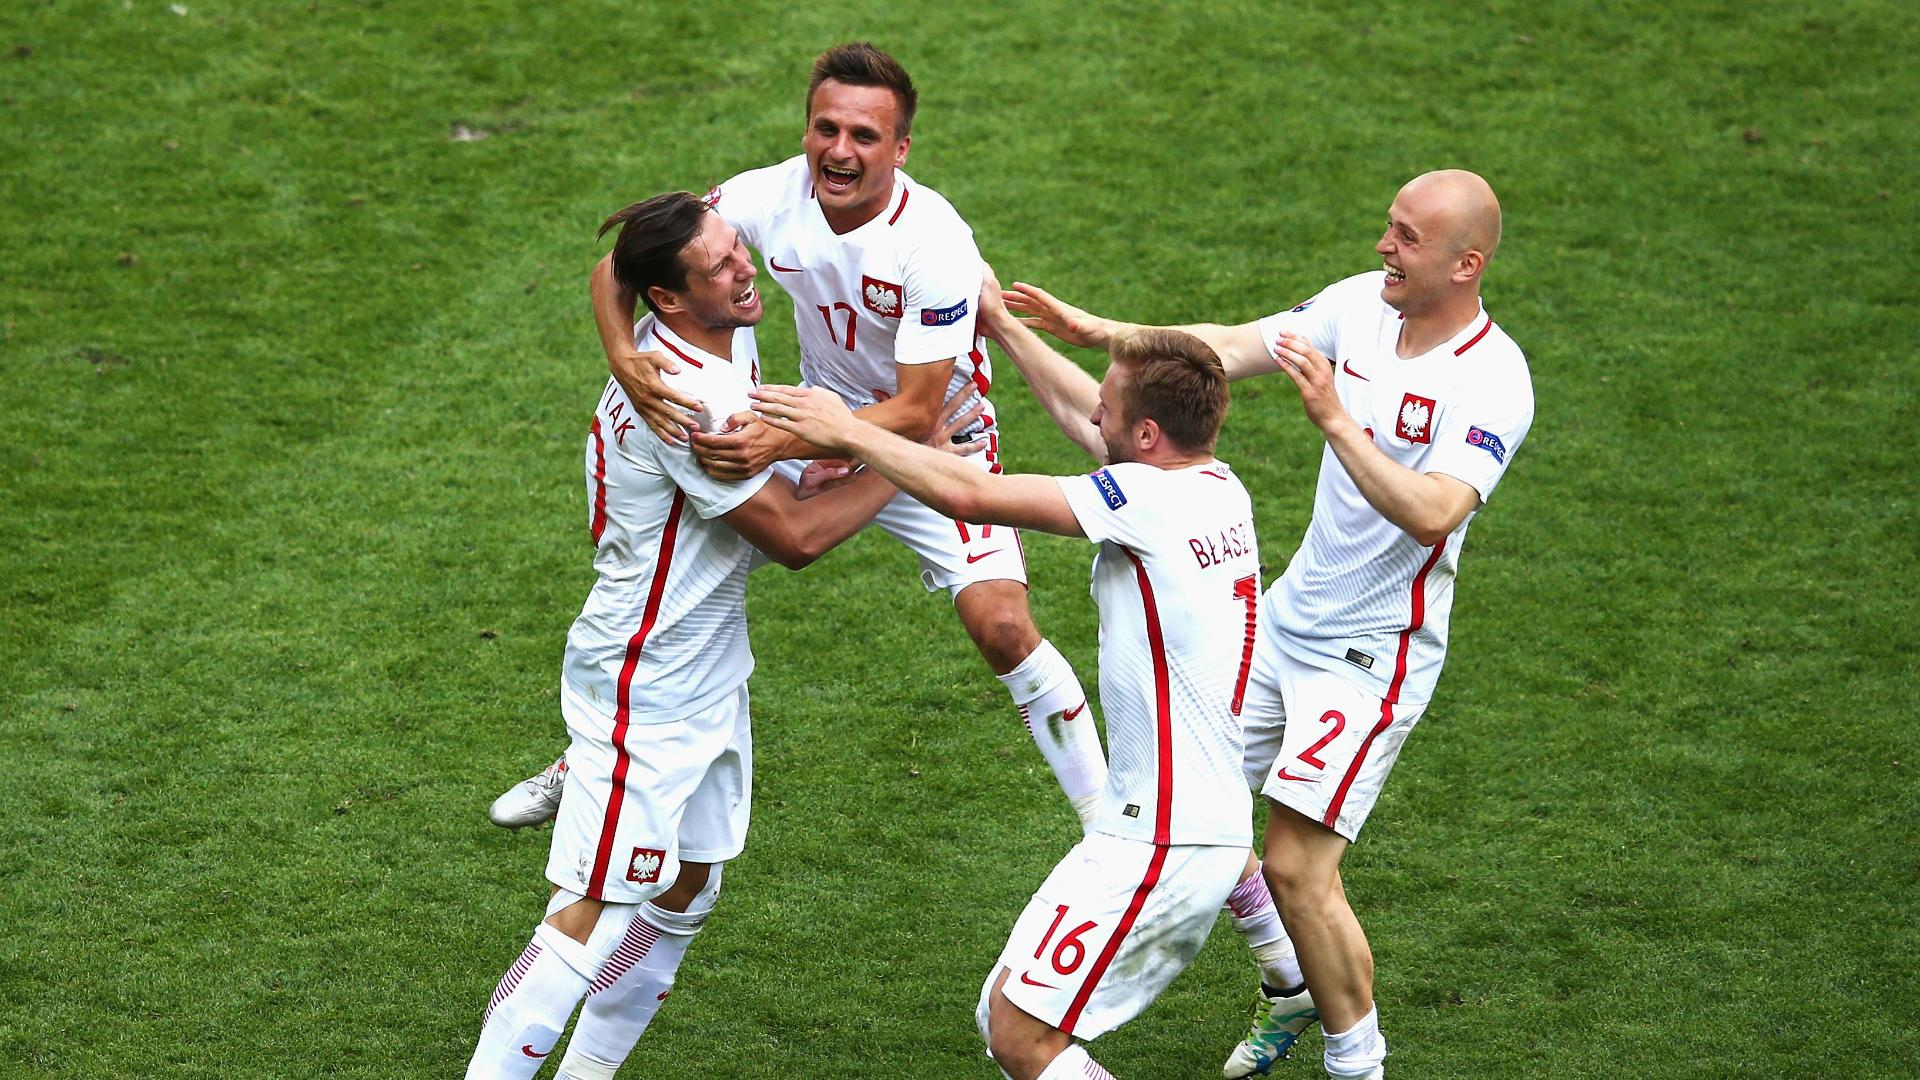 Poland advances on penalties in Euro thriller